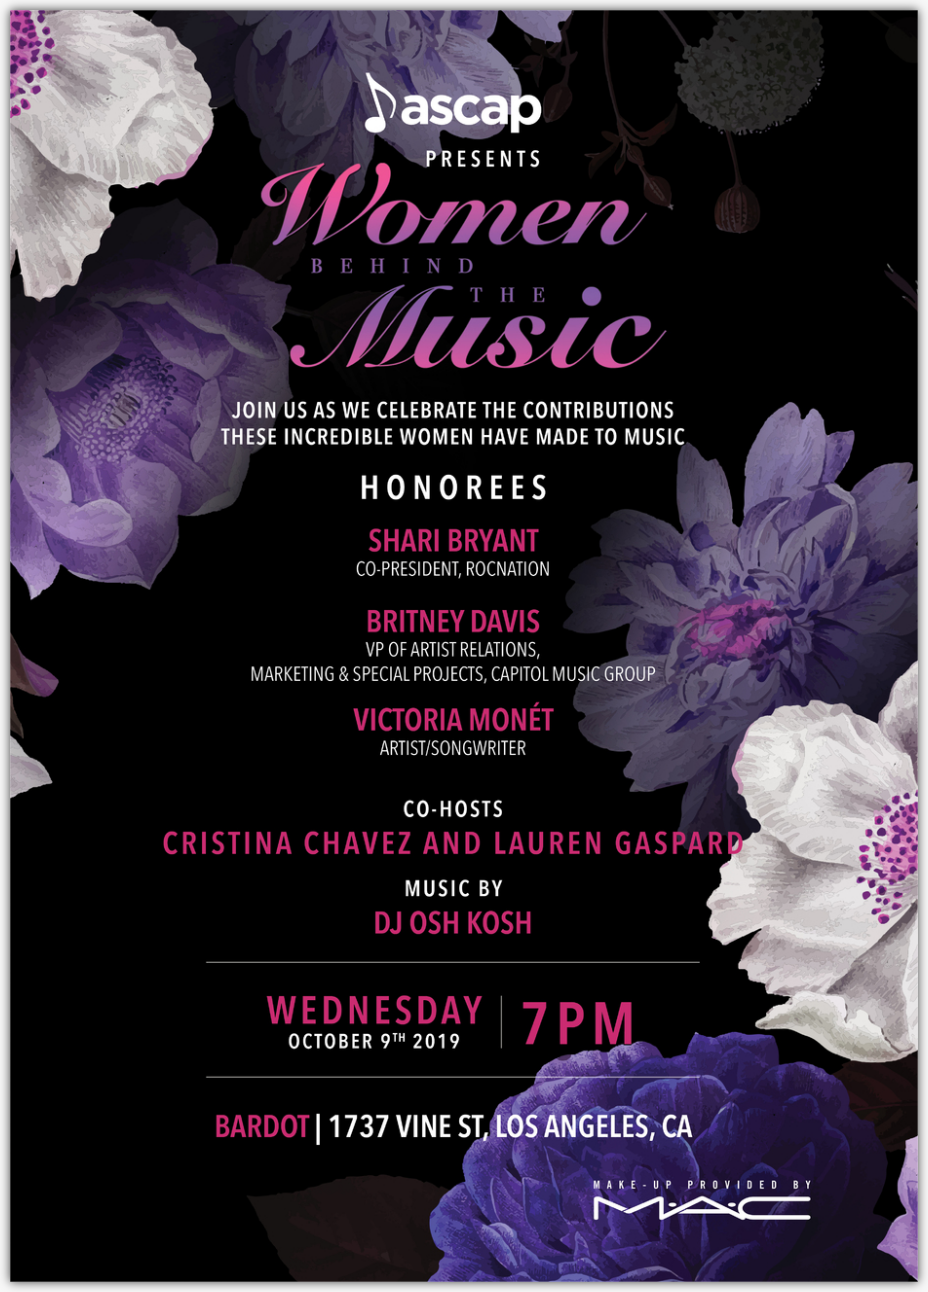 Enable images to view ASCAP Presents: Women Behind the Music 2019